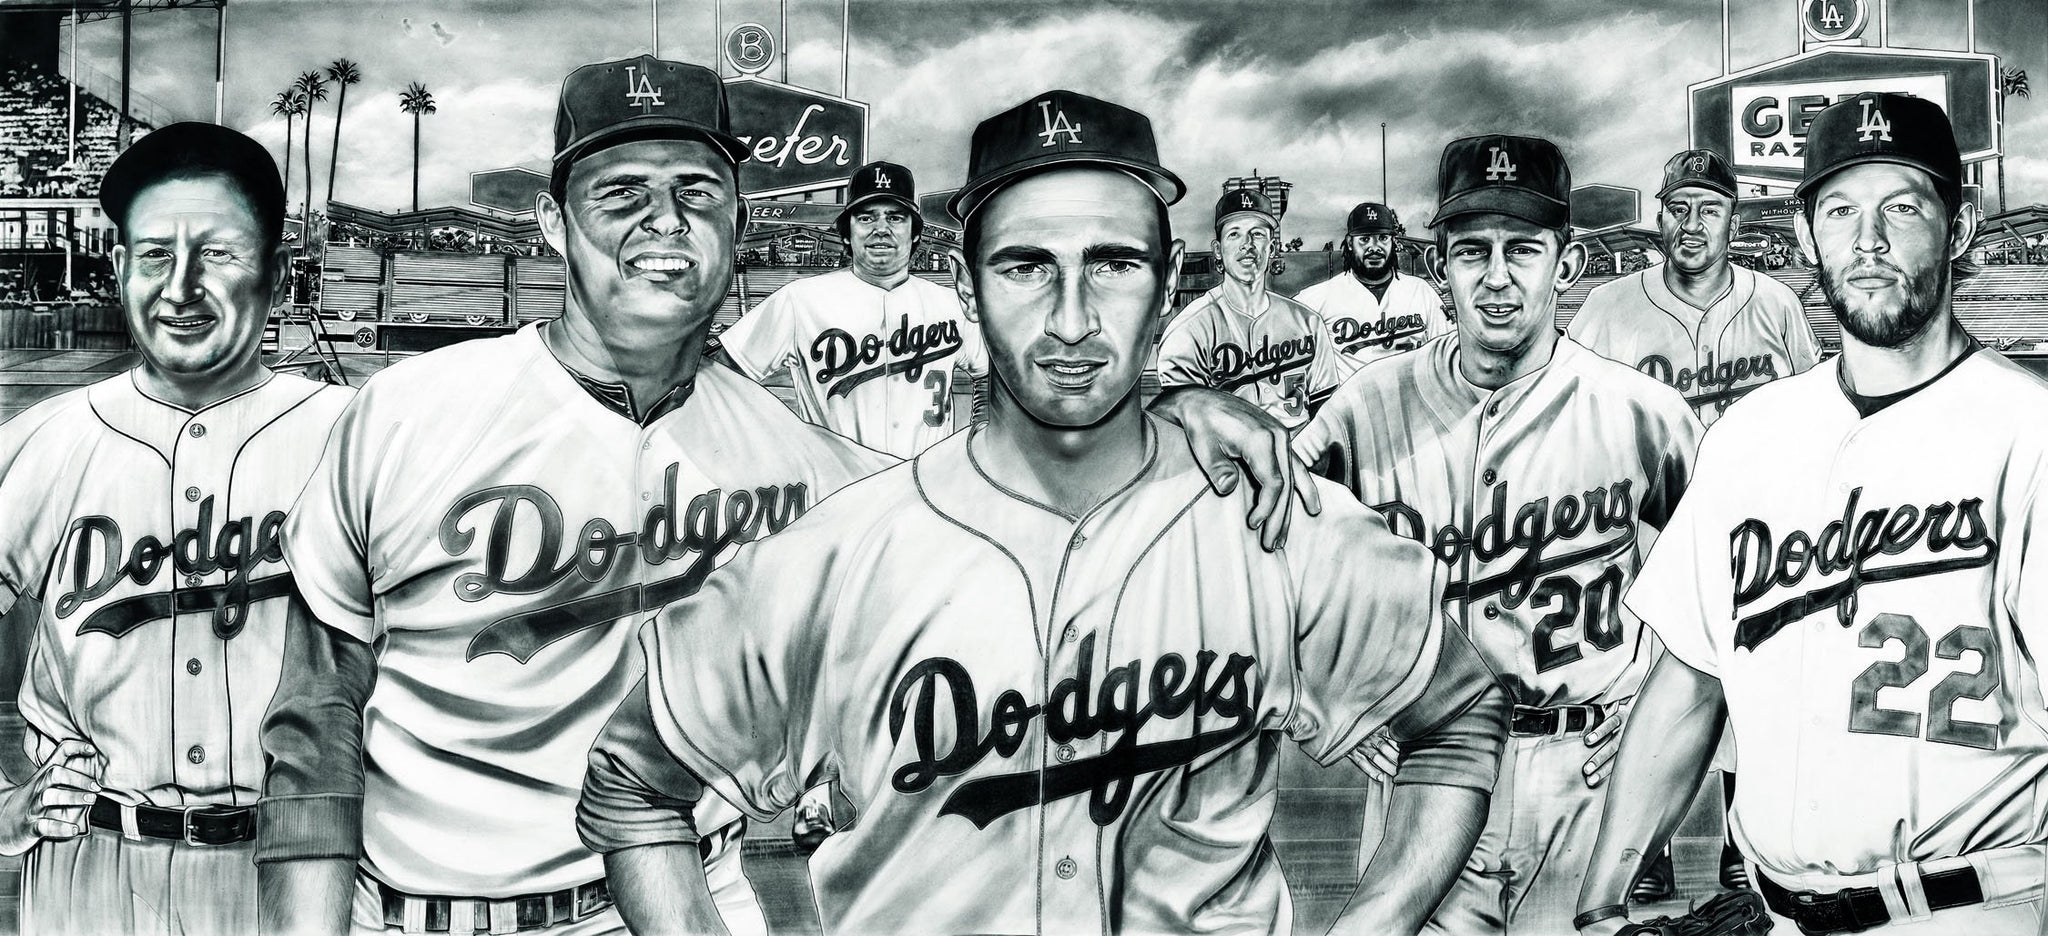 The All-Time Dodgers Pitchers Koufax Kershaw Painting by Dave Hobrecht